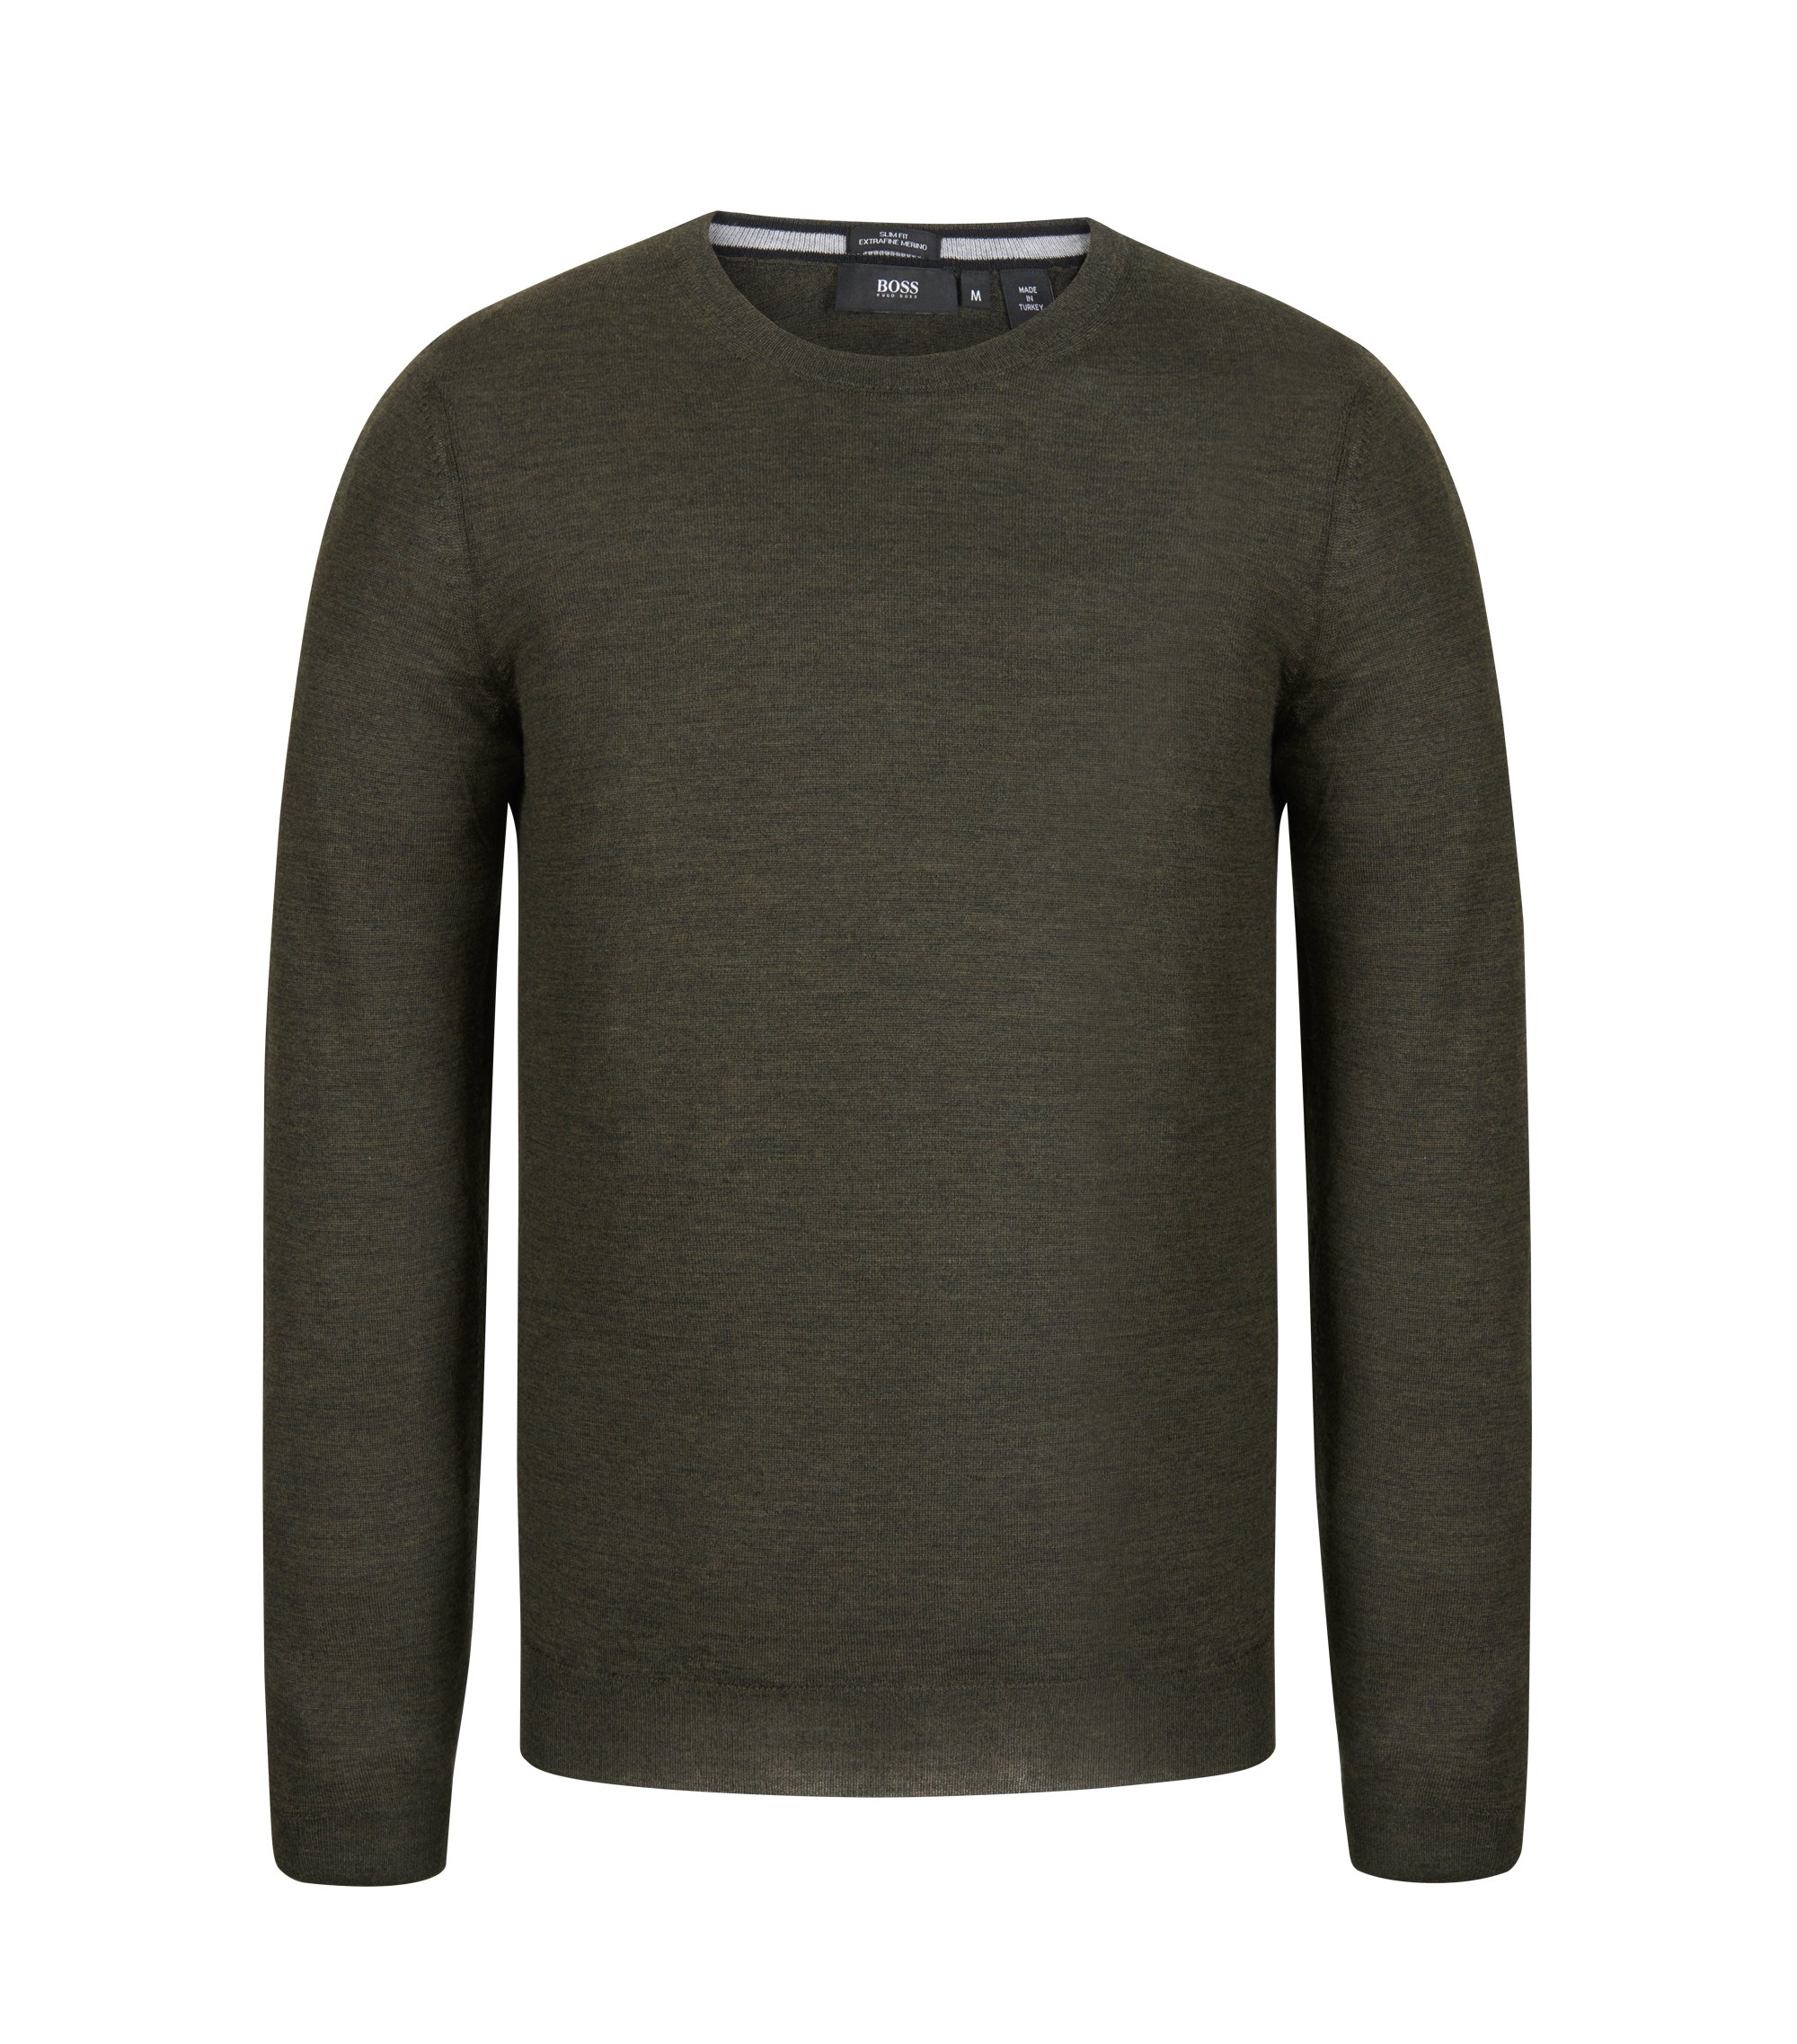 Extra-Fine Merino Wool Sweater | Leno N, Open Green